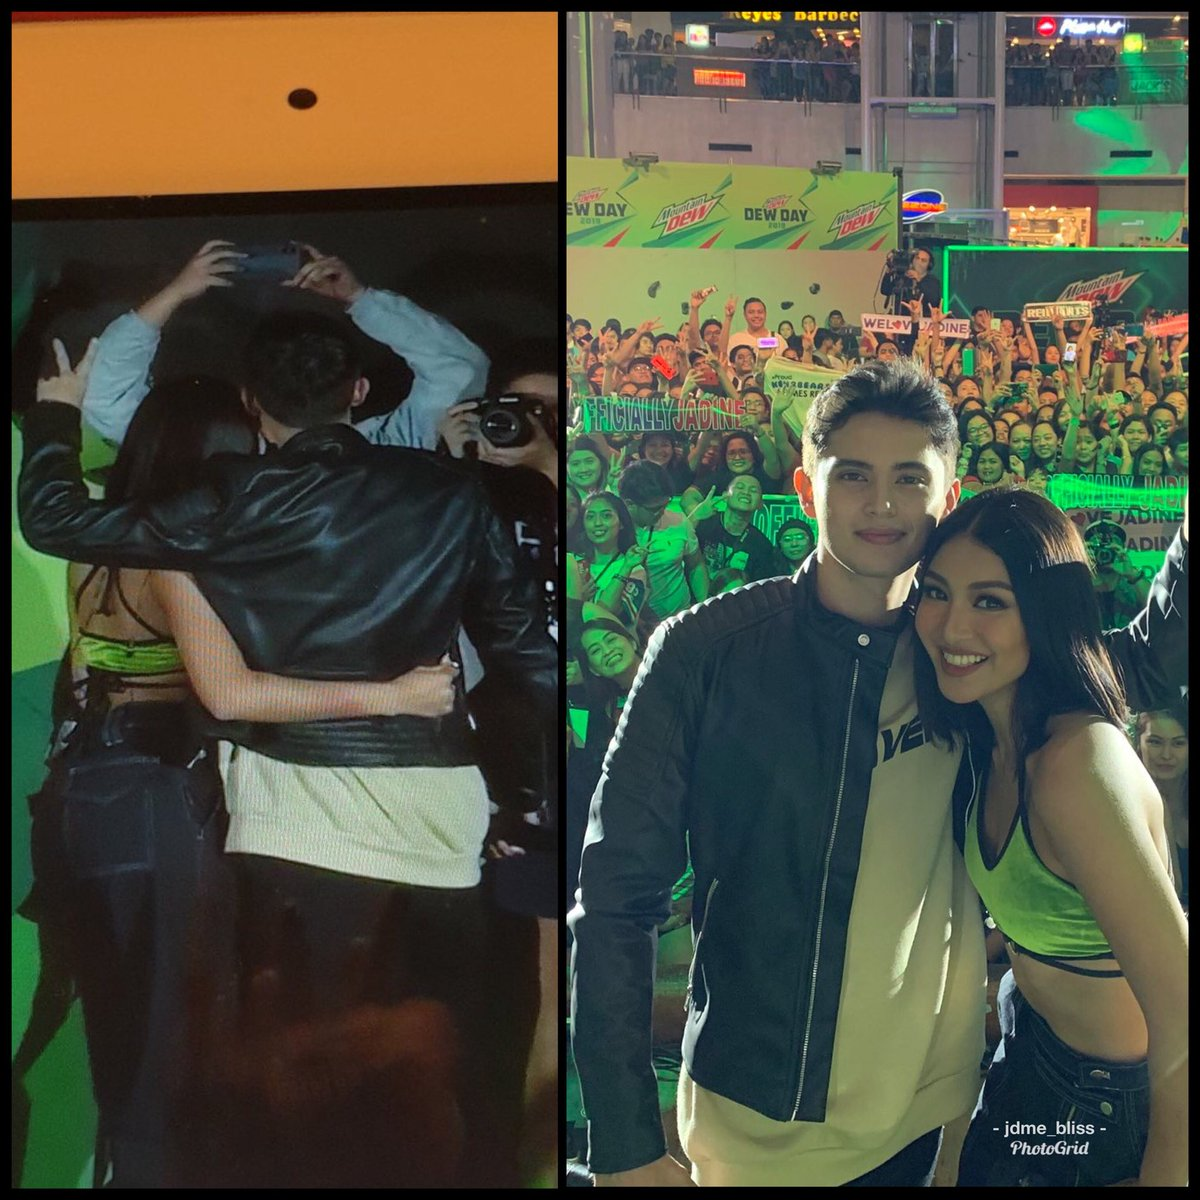 Back view and front view the president with the first gentleman!  mountaindewph/jadineleto  #DewDay <br>http://pic.twitter.com/g1NHhZ0TDU